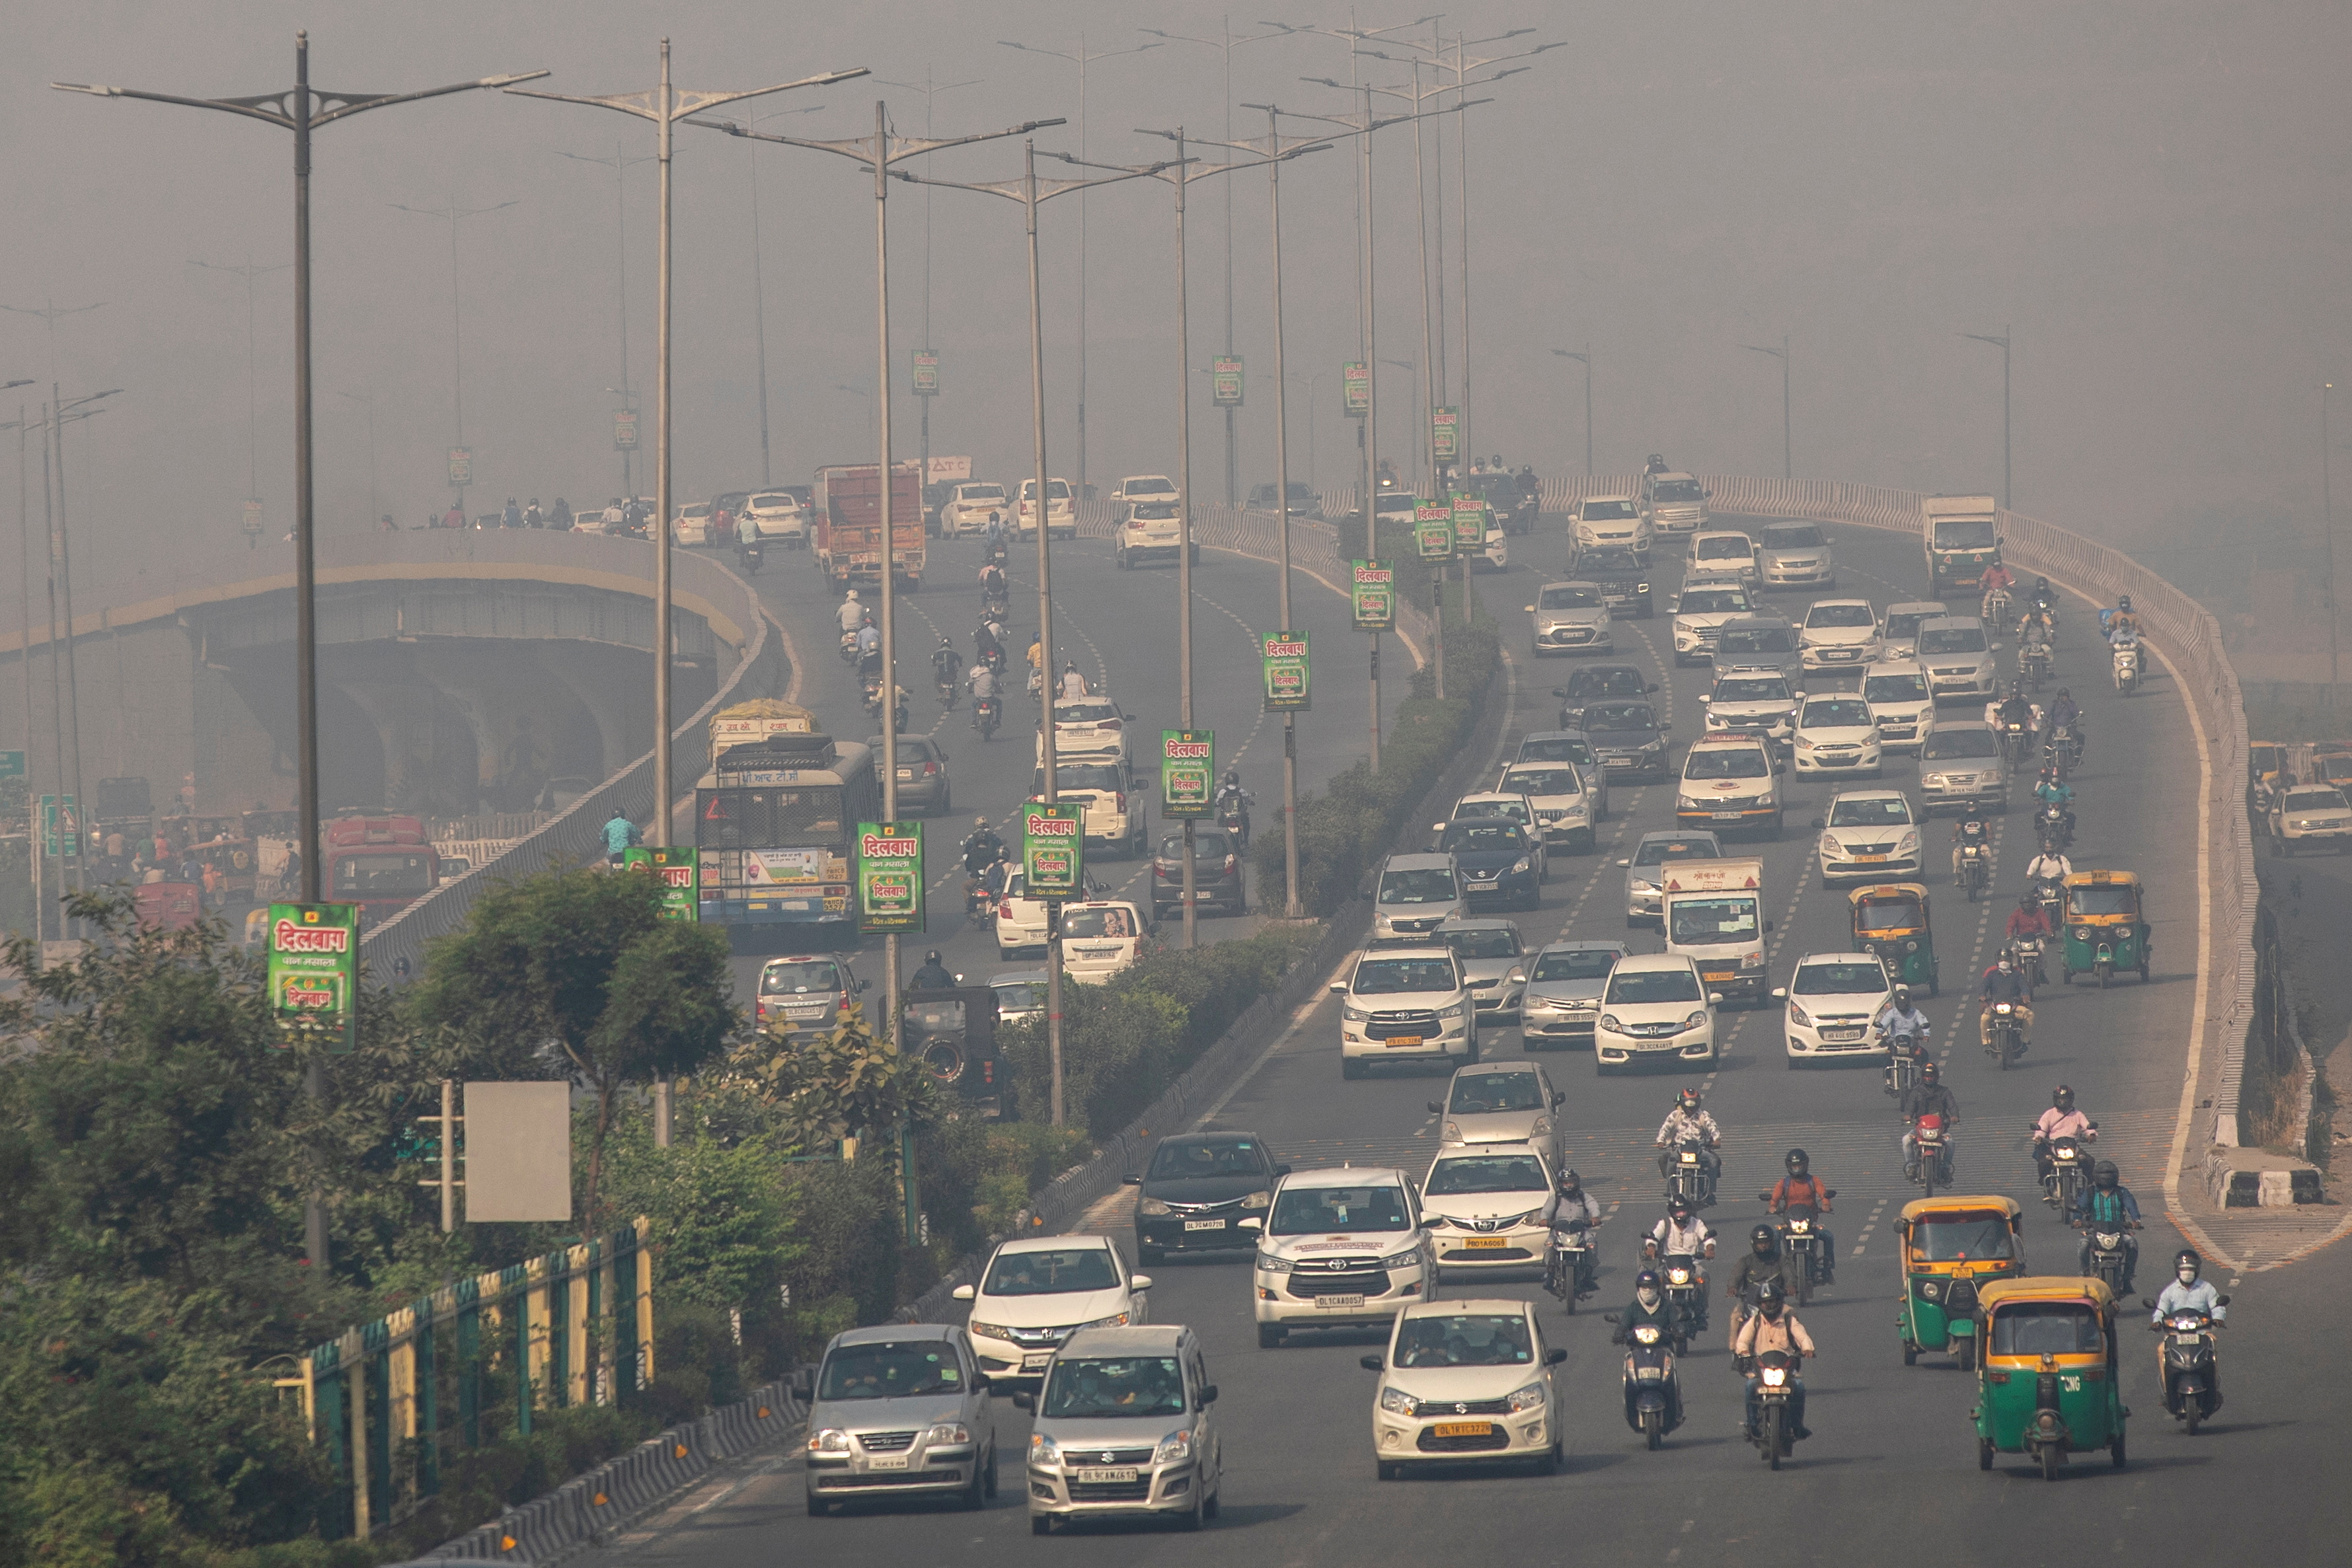 Traffic moves on a smoggy morning in New Delhi, India, October 23, 2020. REUTERS/Danish Siddiqui